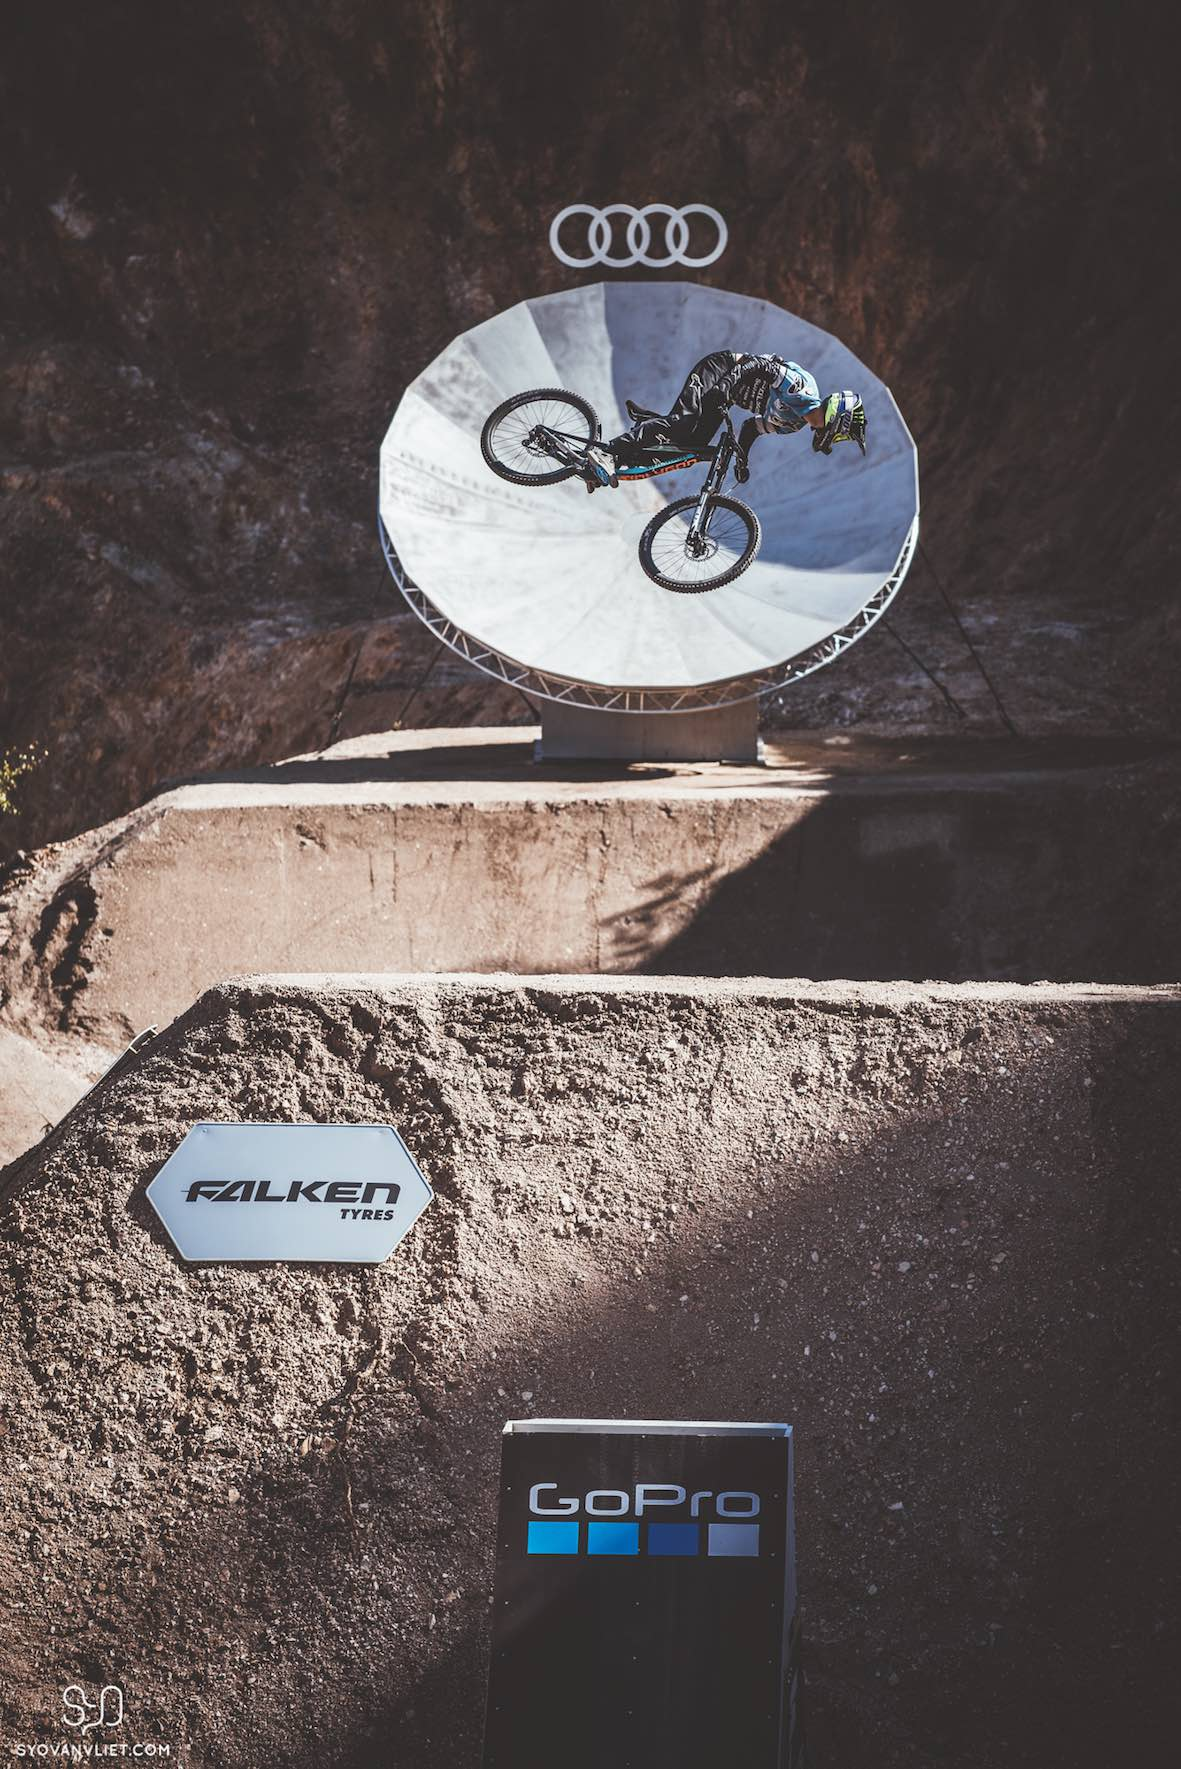 Interview with Sam Reynolds about the Audi Nines Slopestyle MTB event